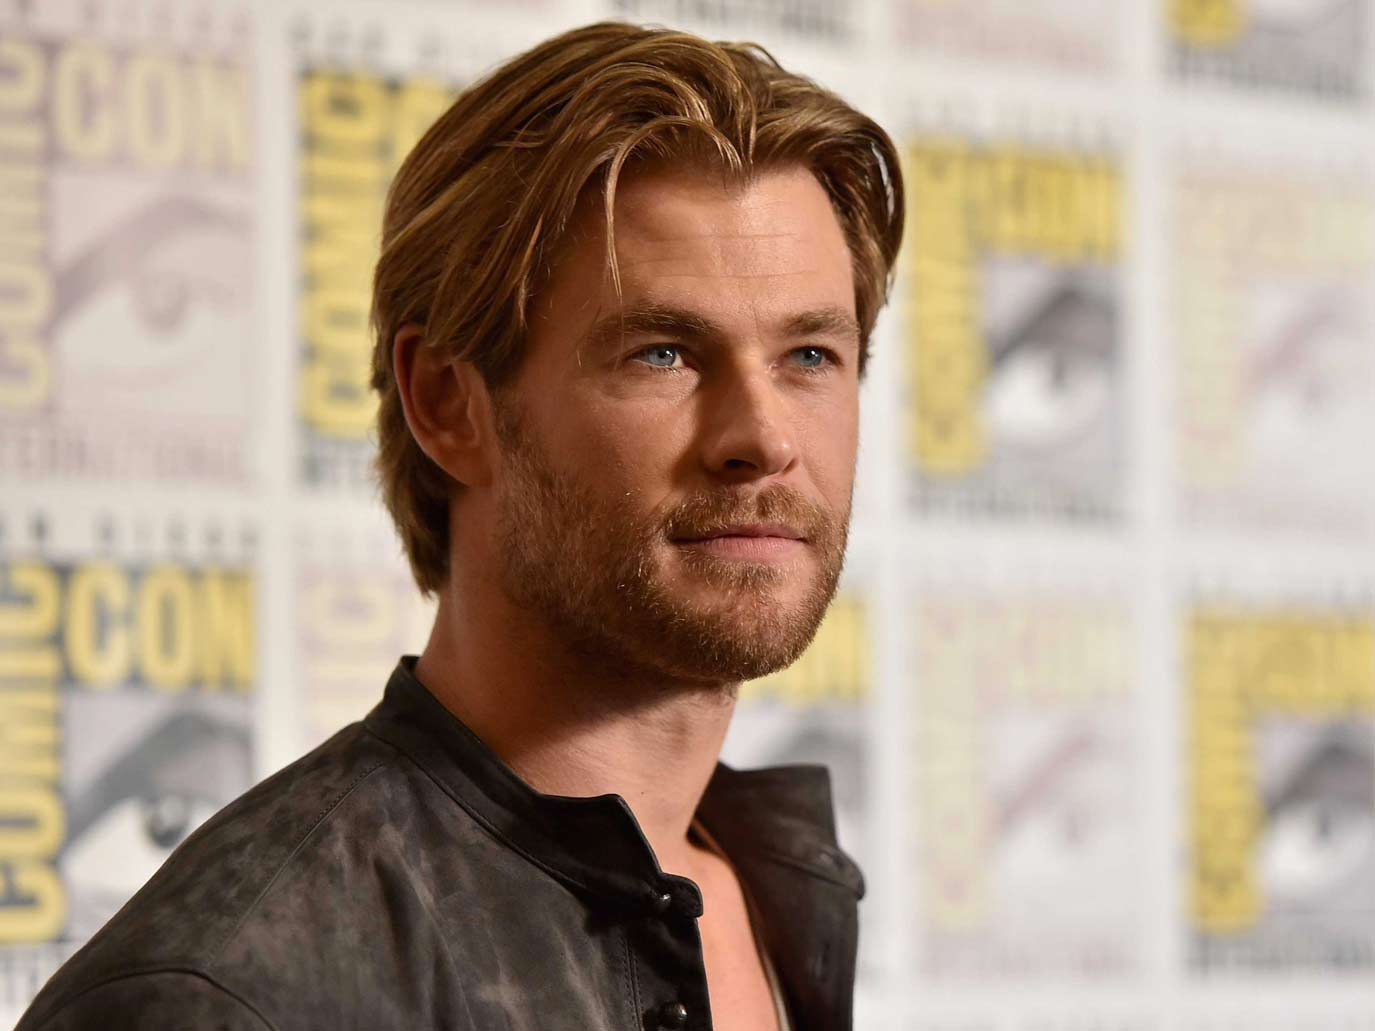 chris-hemsworth-sexy-jacket-hollywood-hot-sexiest-actor-men-movie-star-recent-suit-watch-handsome-best-hairstyle